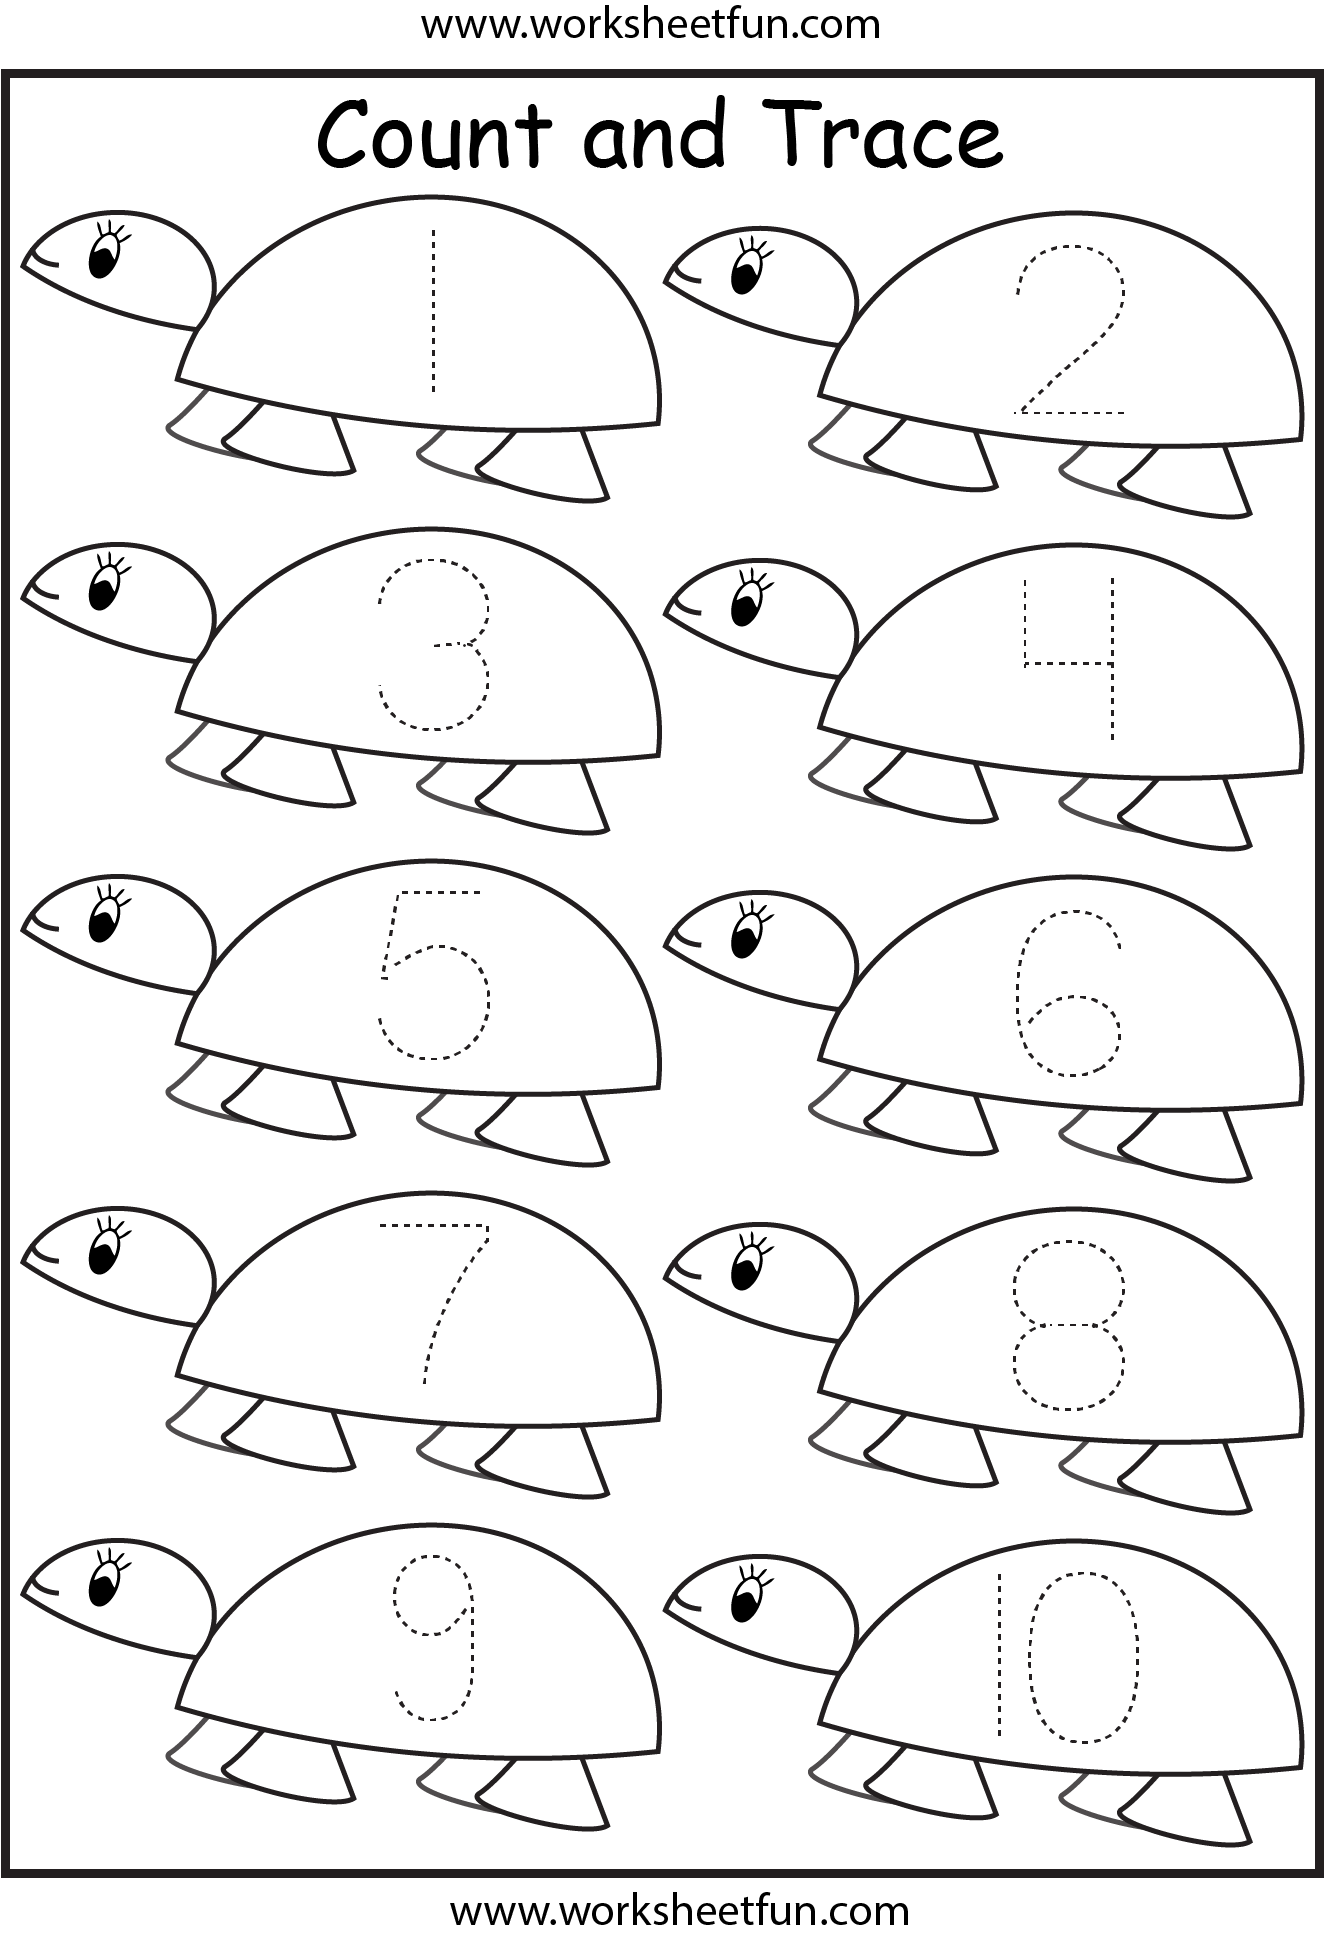 5 Best Images of Preschool Printables Number 12 - Cut and ...